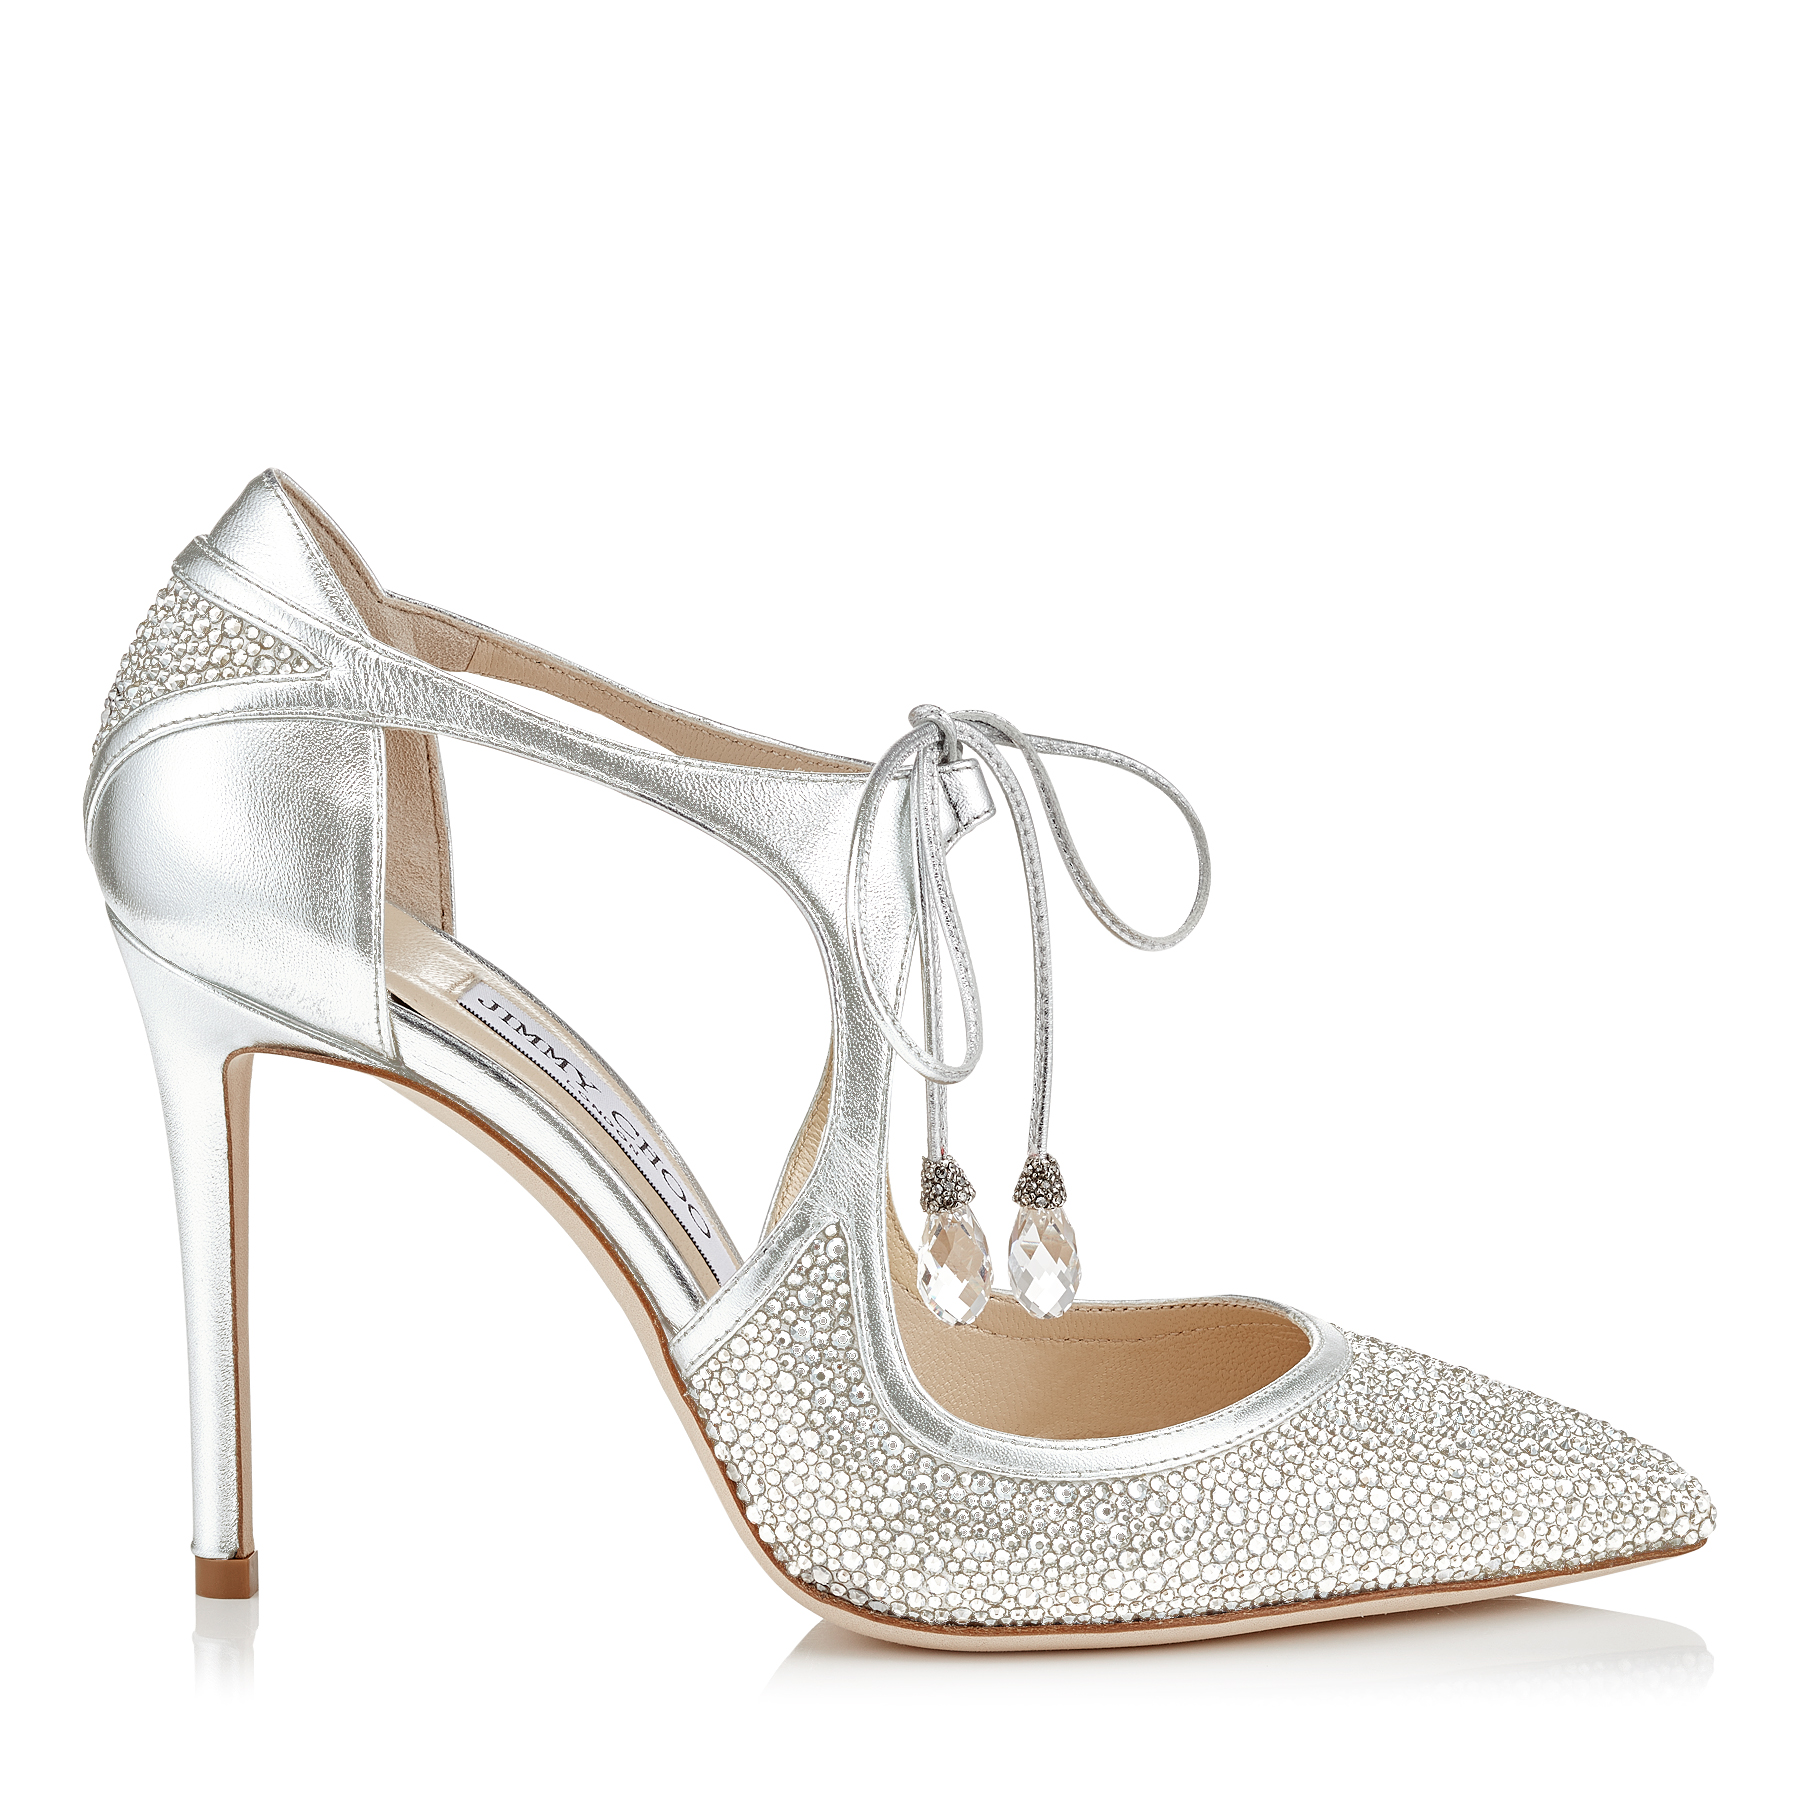 VANESSA 100 Silver Metallic Nappa Leather and Crystal Pointy Toe Pumps by Jimmy Choo